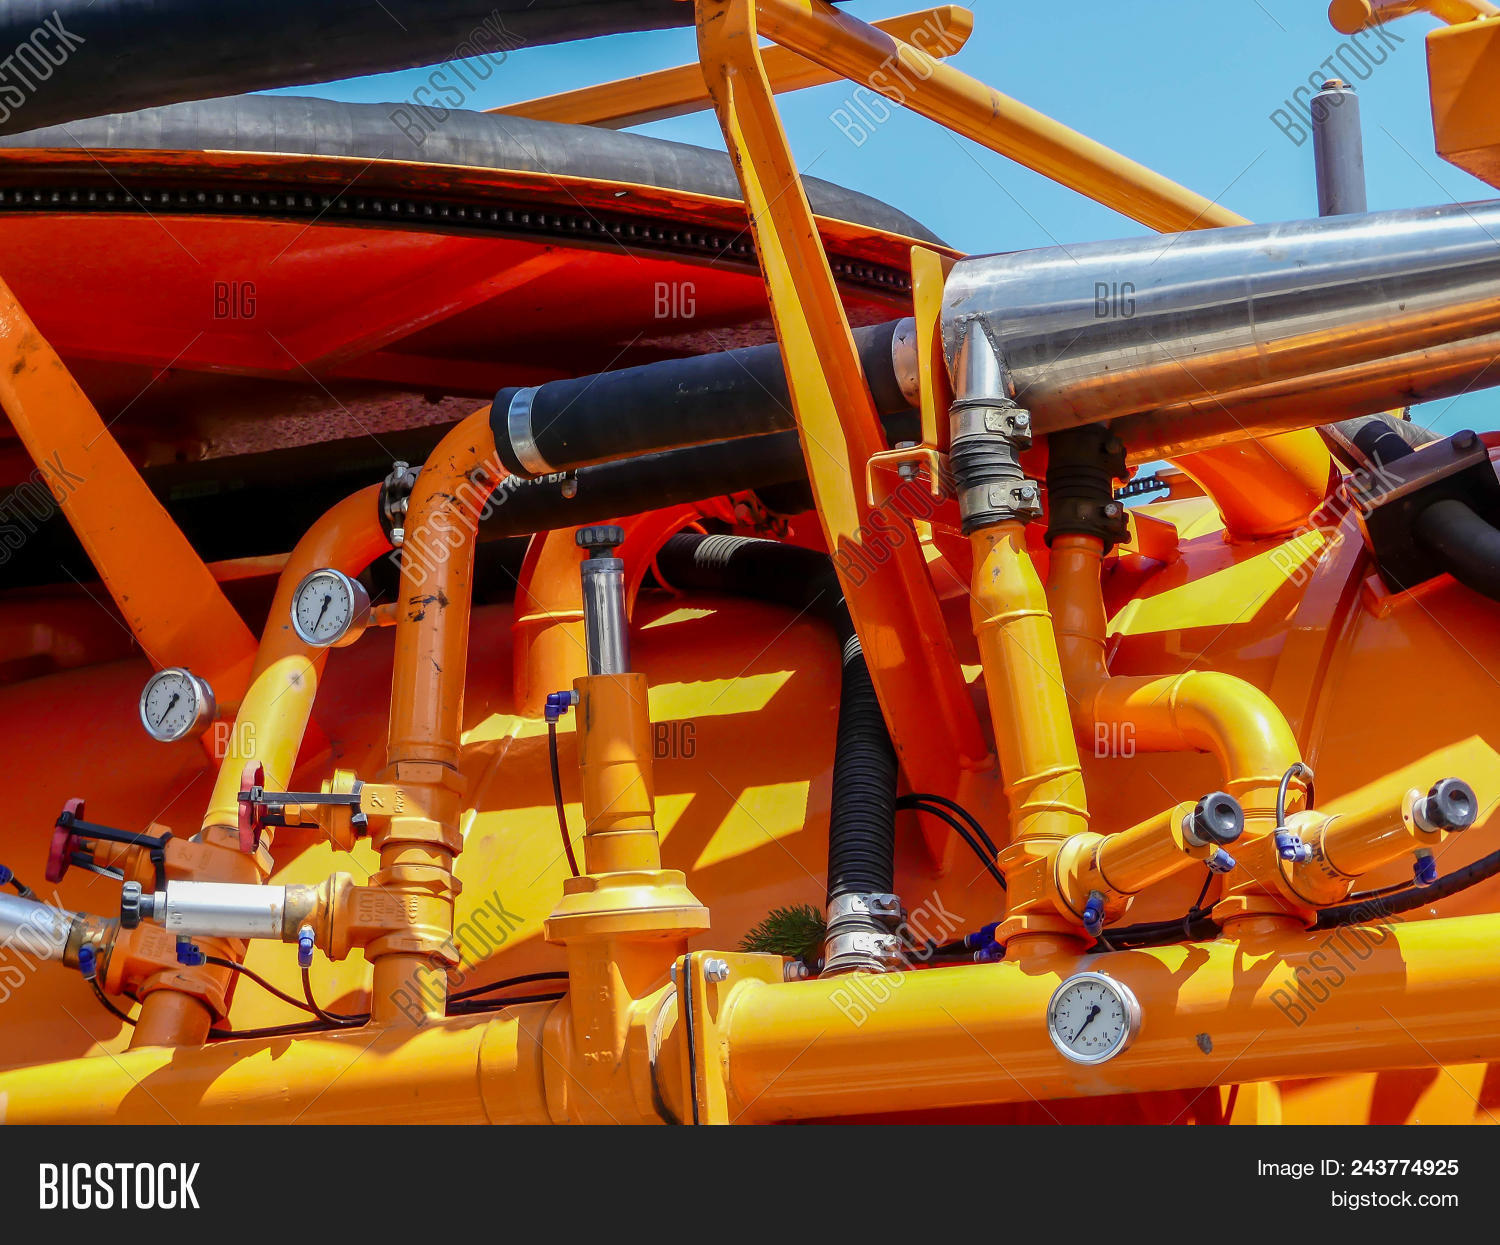 Sewage Cleaner Sewage Cleaner Machine Image Photo Free Trial Bigstock